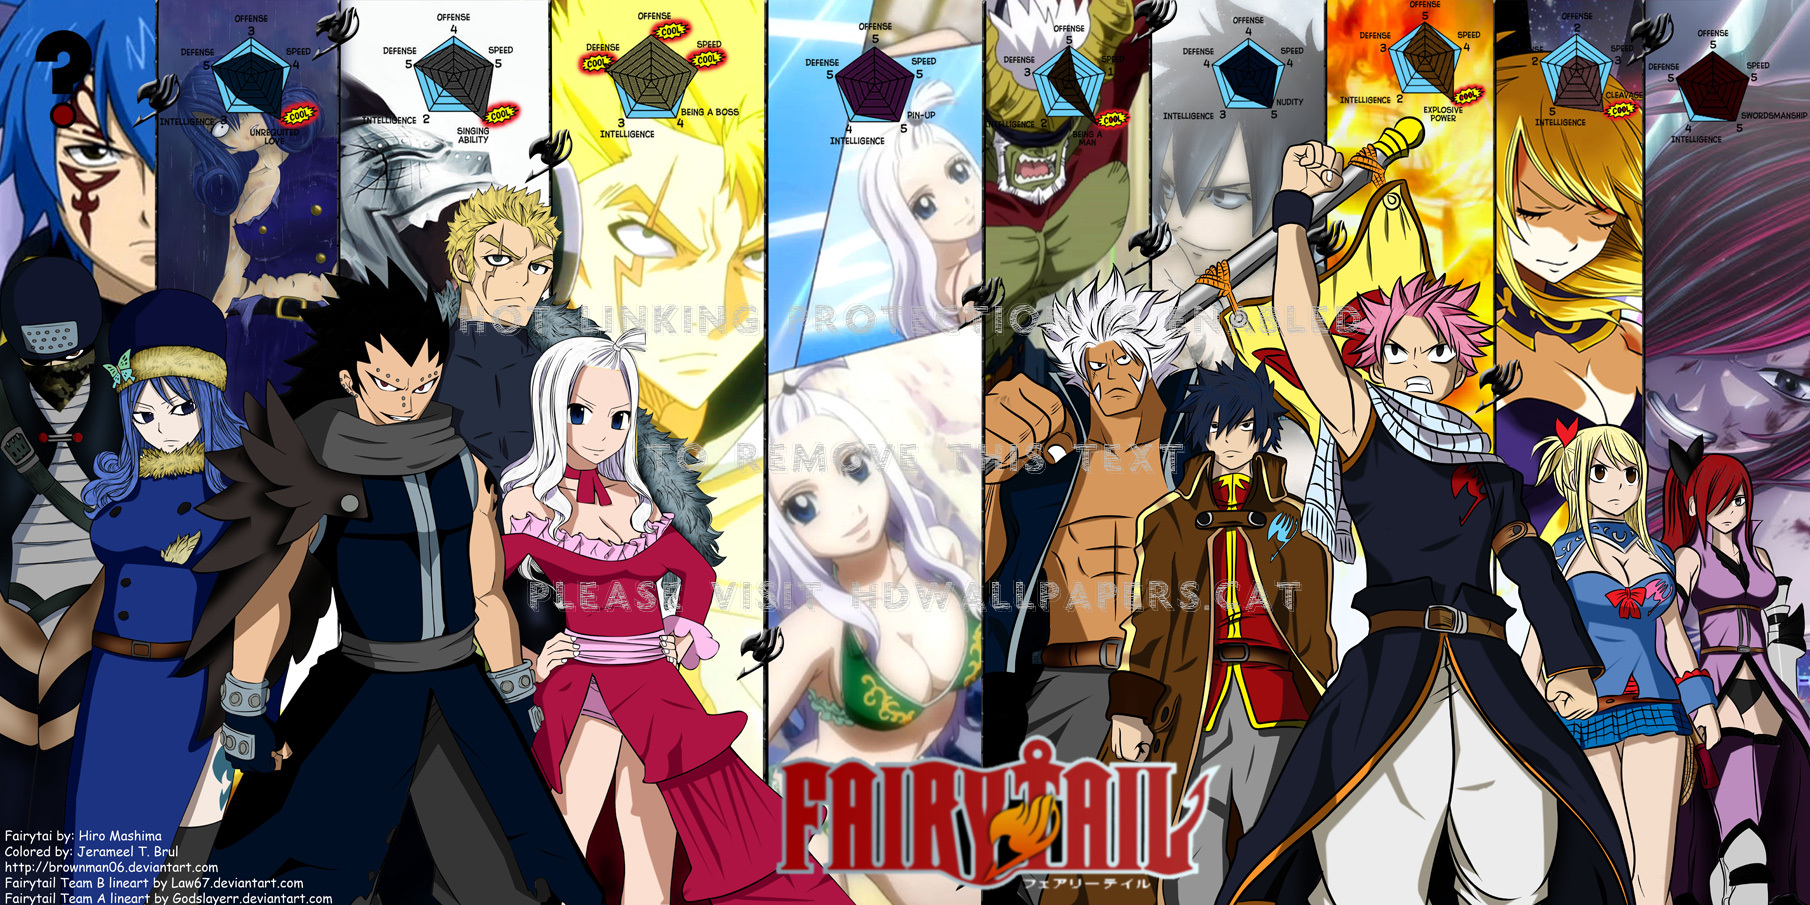 Fairy Tail Gray Fullbuster Mirajane Strauss Fairy Tail Vs Fate Stay Night 1810x905 Wallpaper Teahub Io Want to discover art related to hiromashima? fairy tail gray fullbuster mirajane